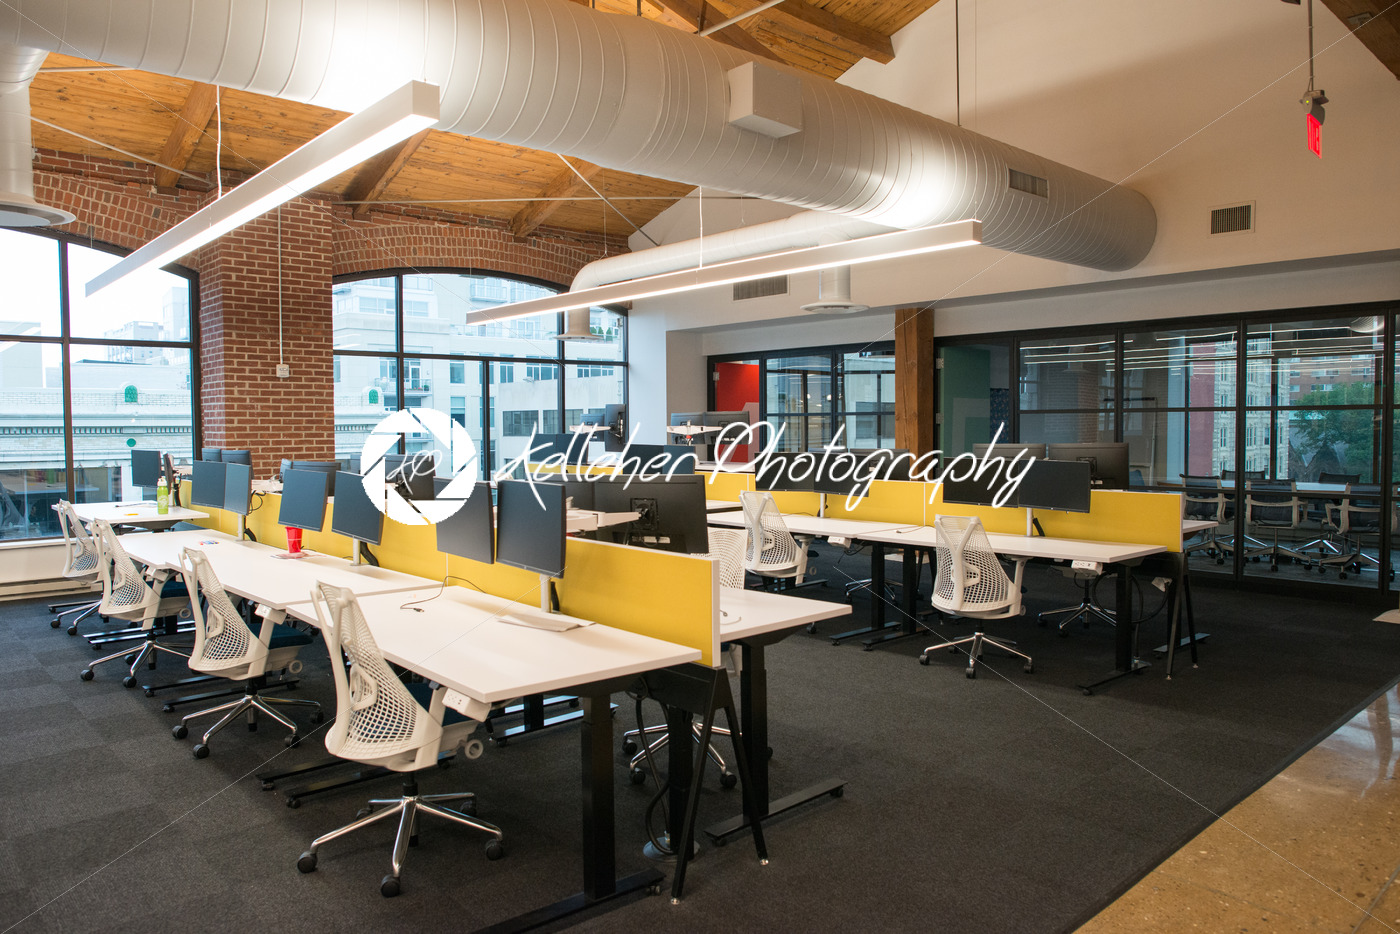 office space lighting. Trendy Modern Open Concept Loft Office Space With Big Windows, Natural Light And A Layout To Lighting